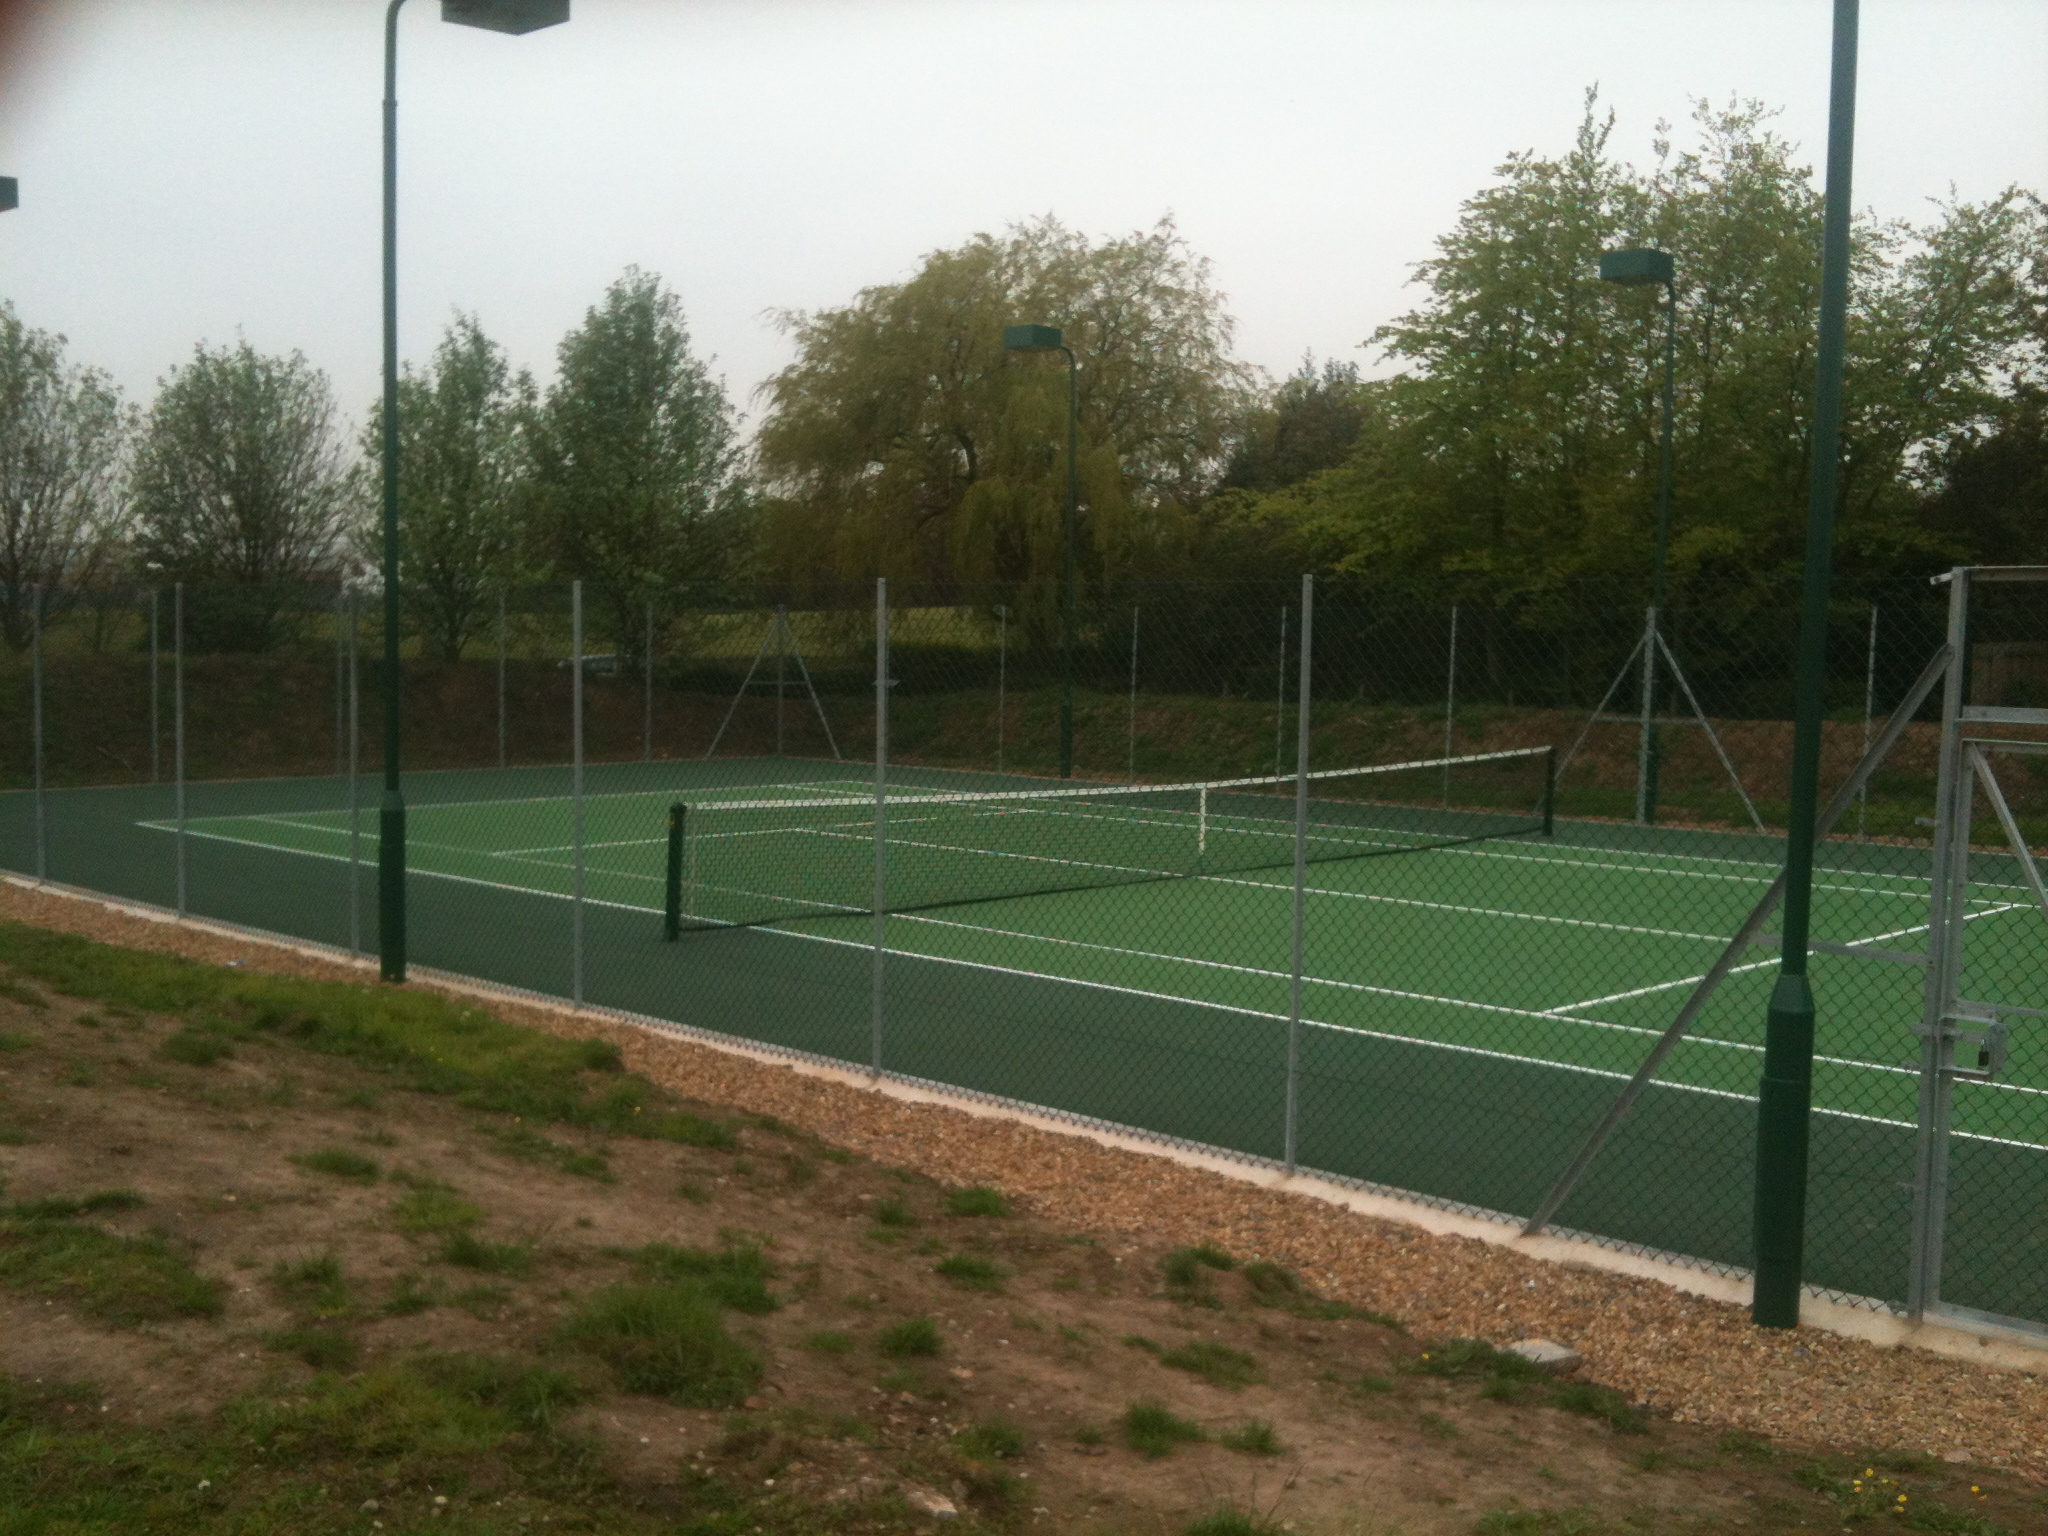 Desford Tennis Club fundraising events